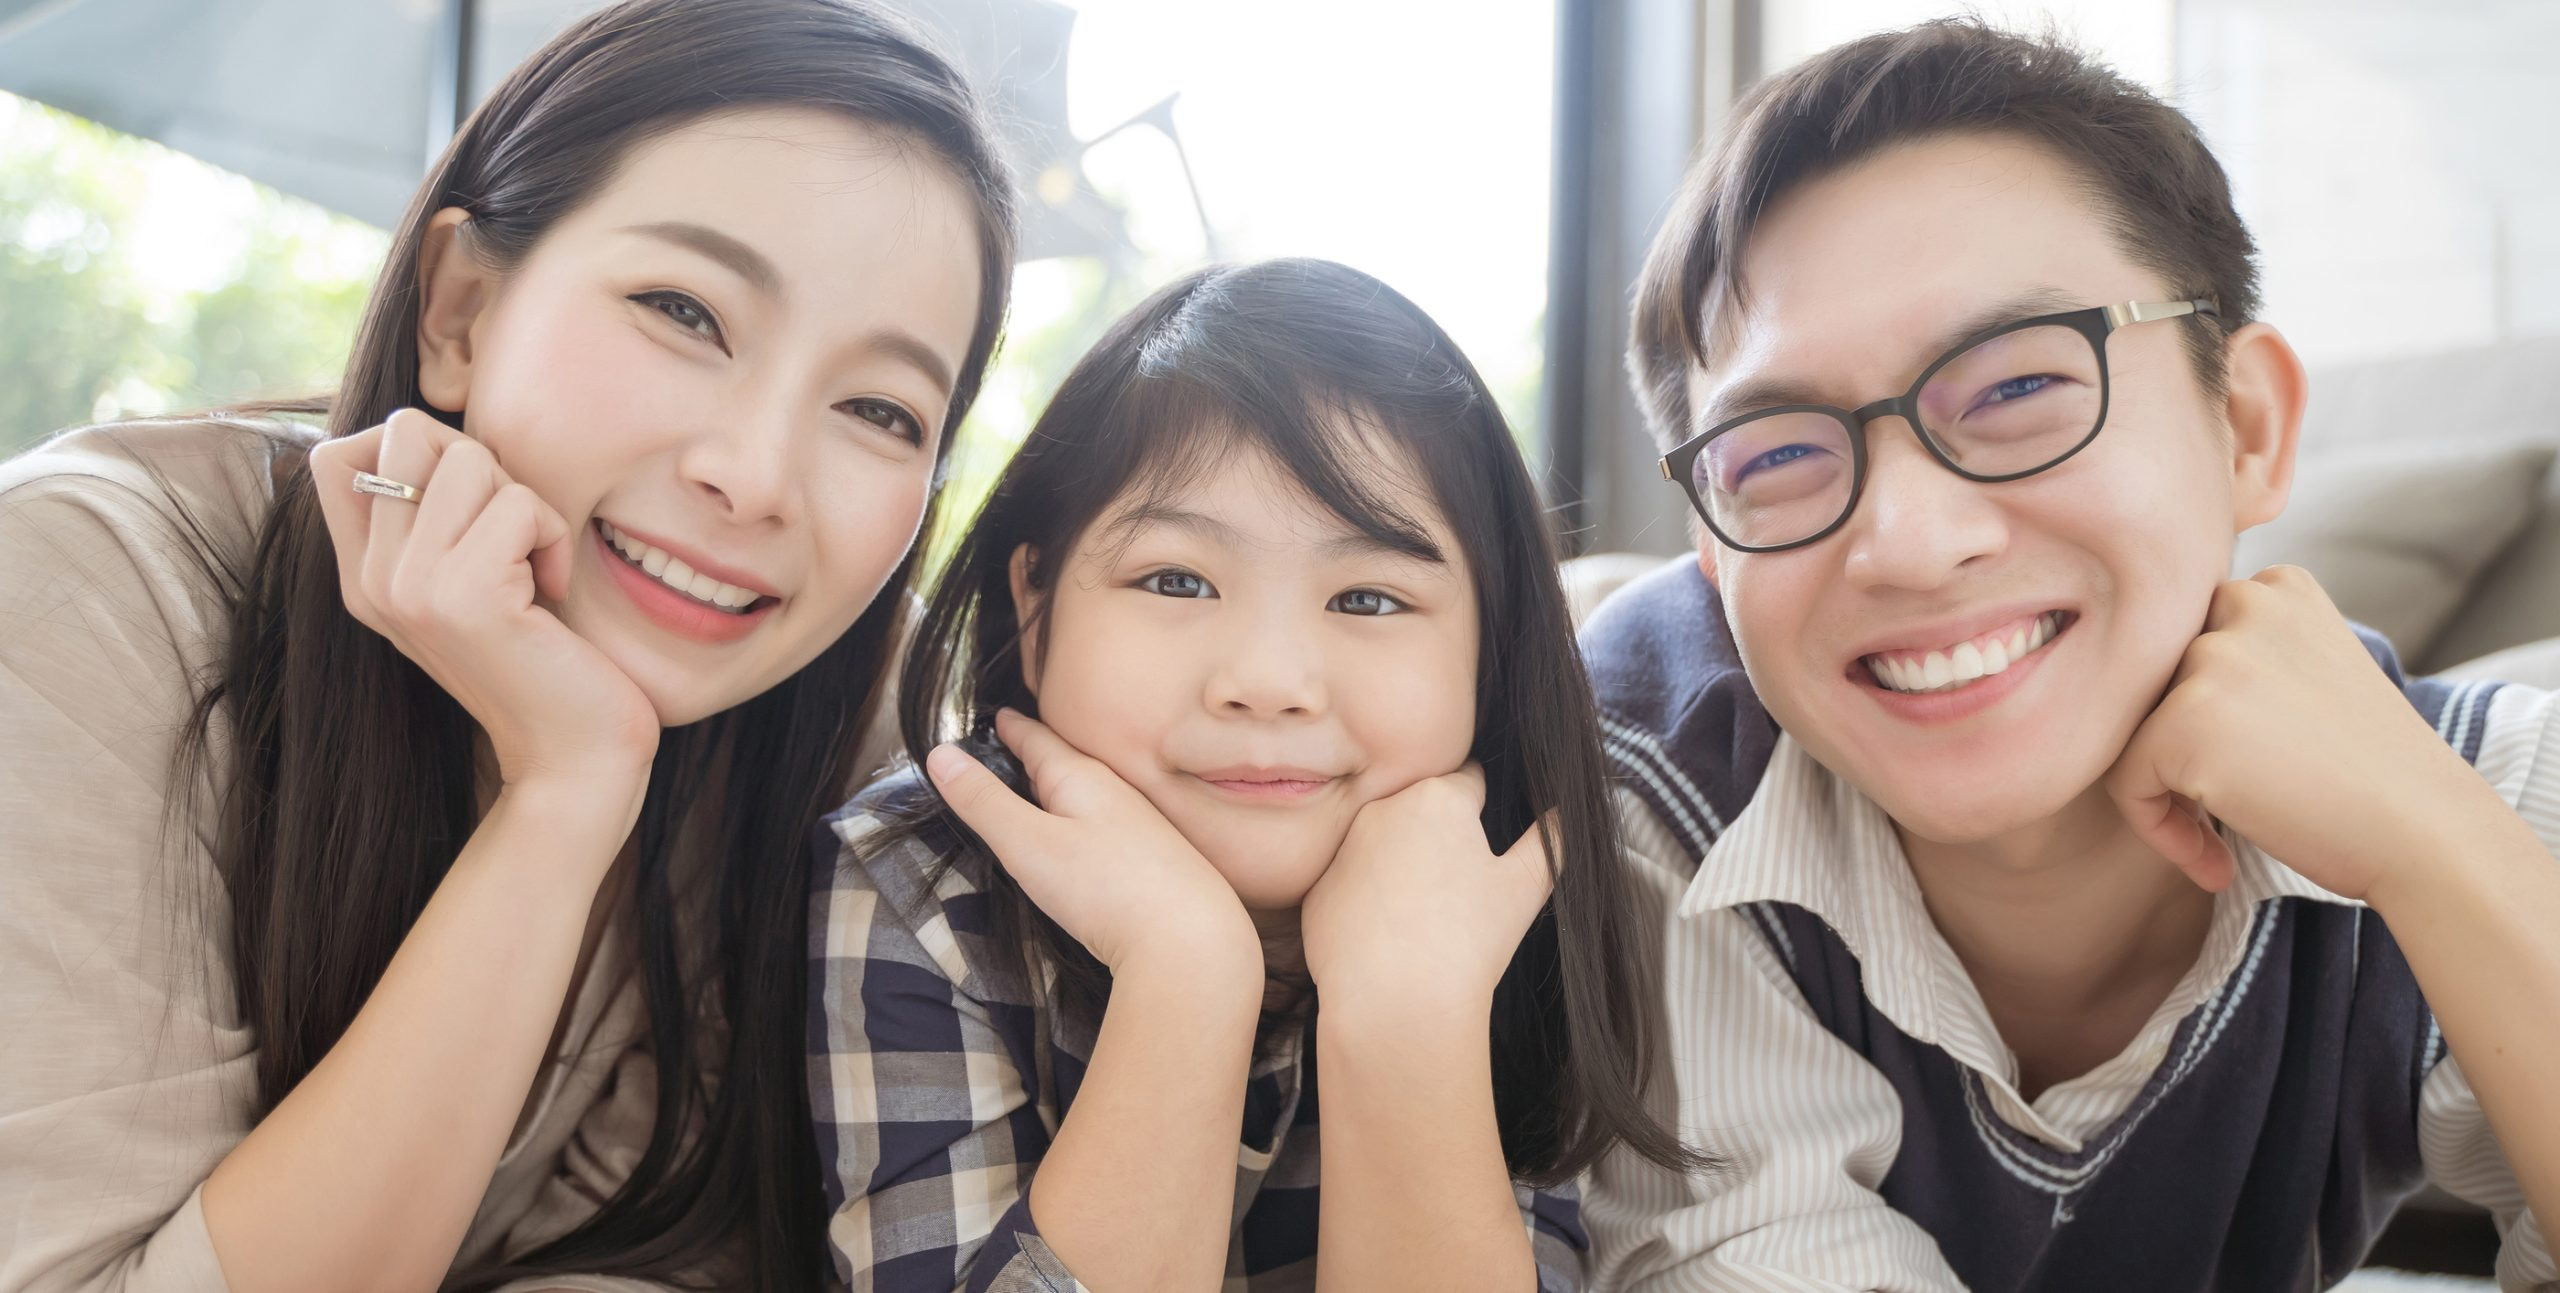 The Top Ten Benefits Of Spending Time With Family